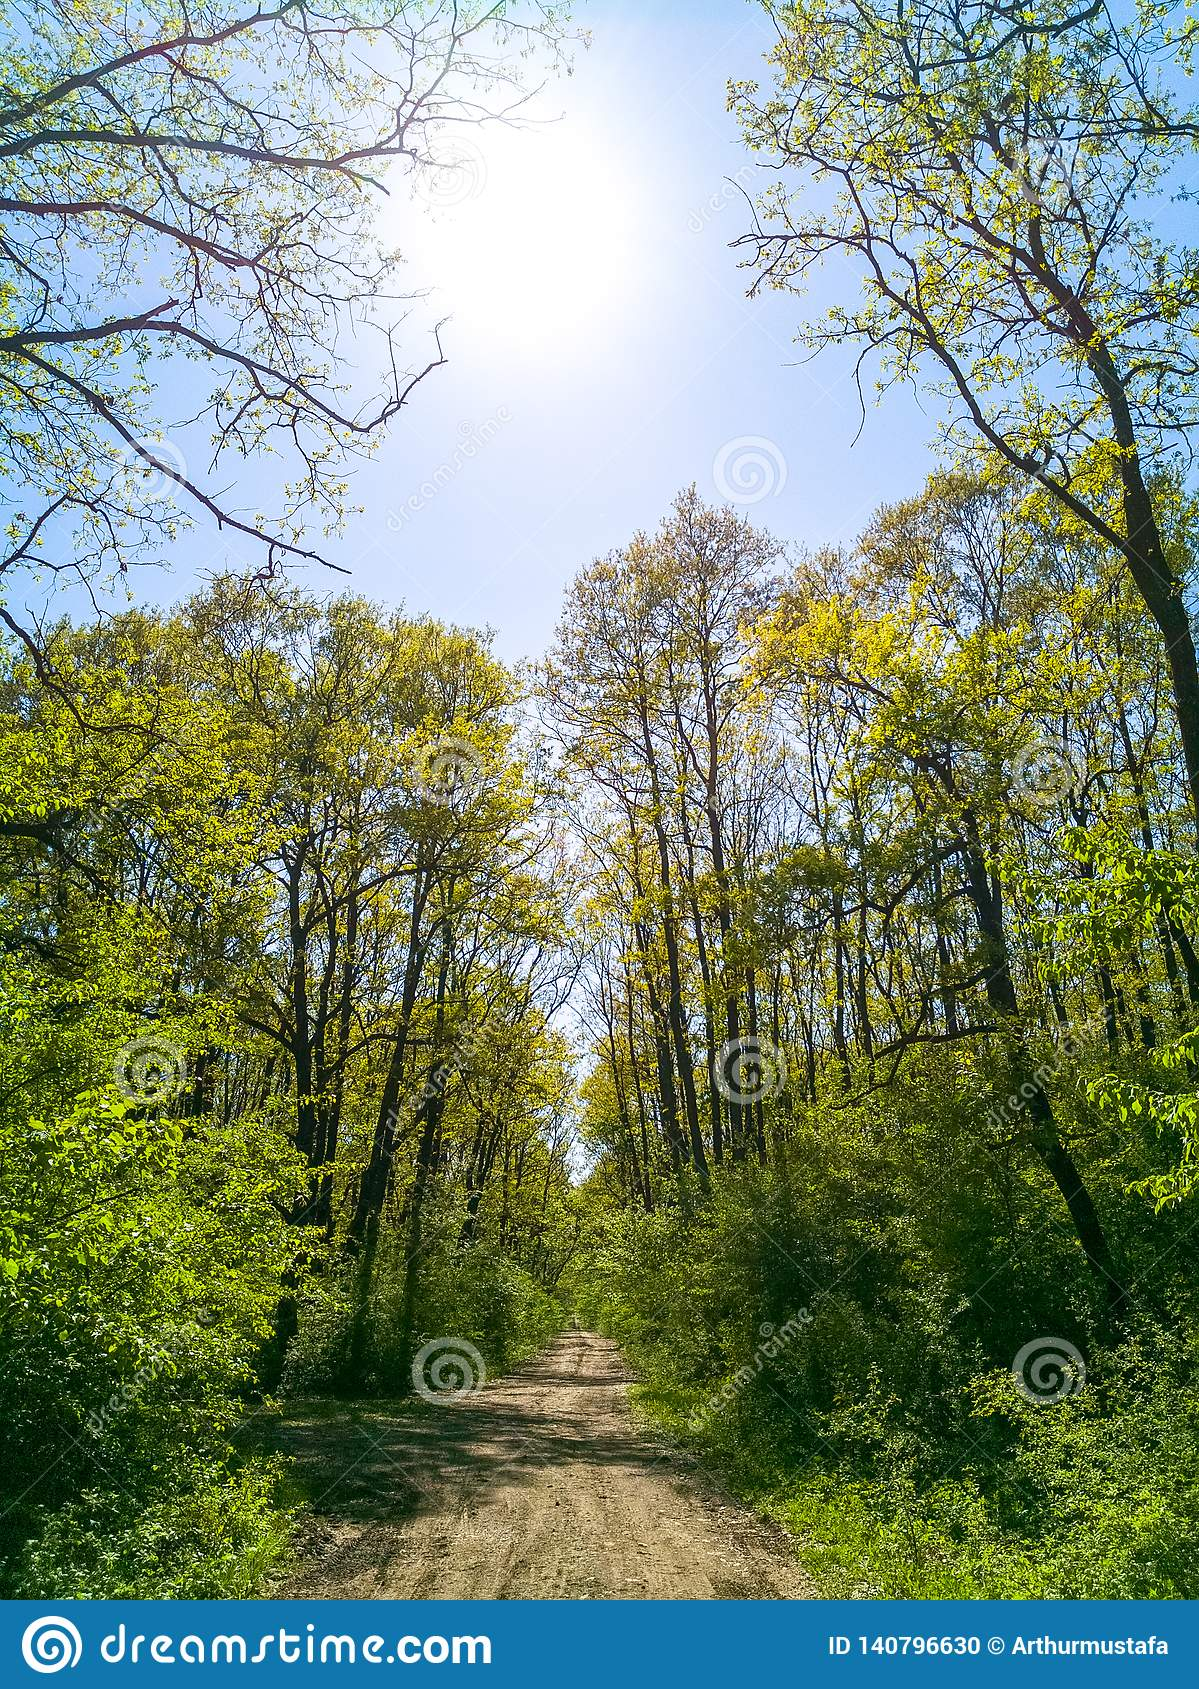 Bright green forest full of life under the spring warm sunlight. Tranquil background of spring nature, beautiful landscape of a